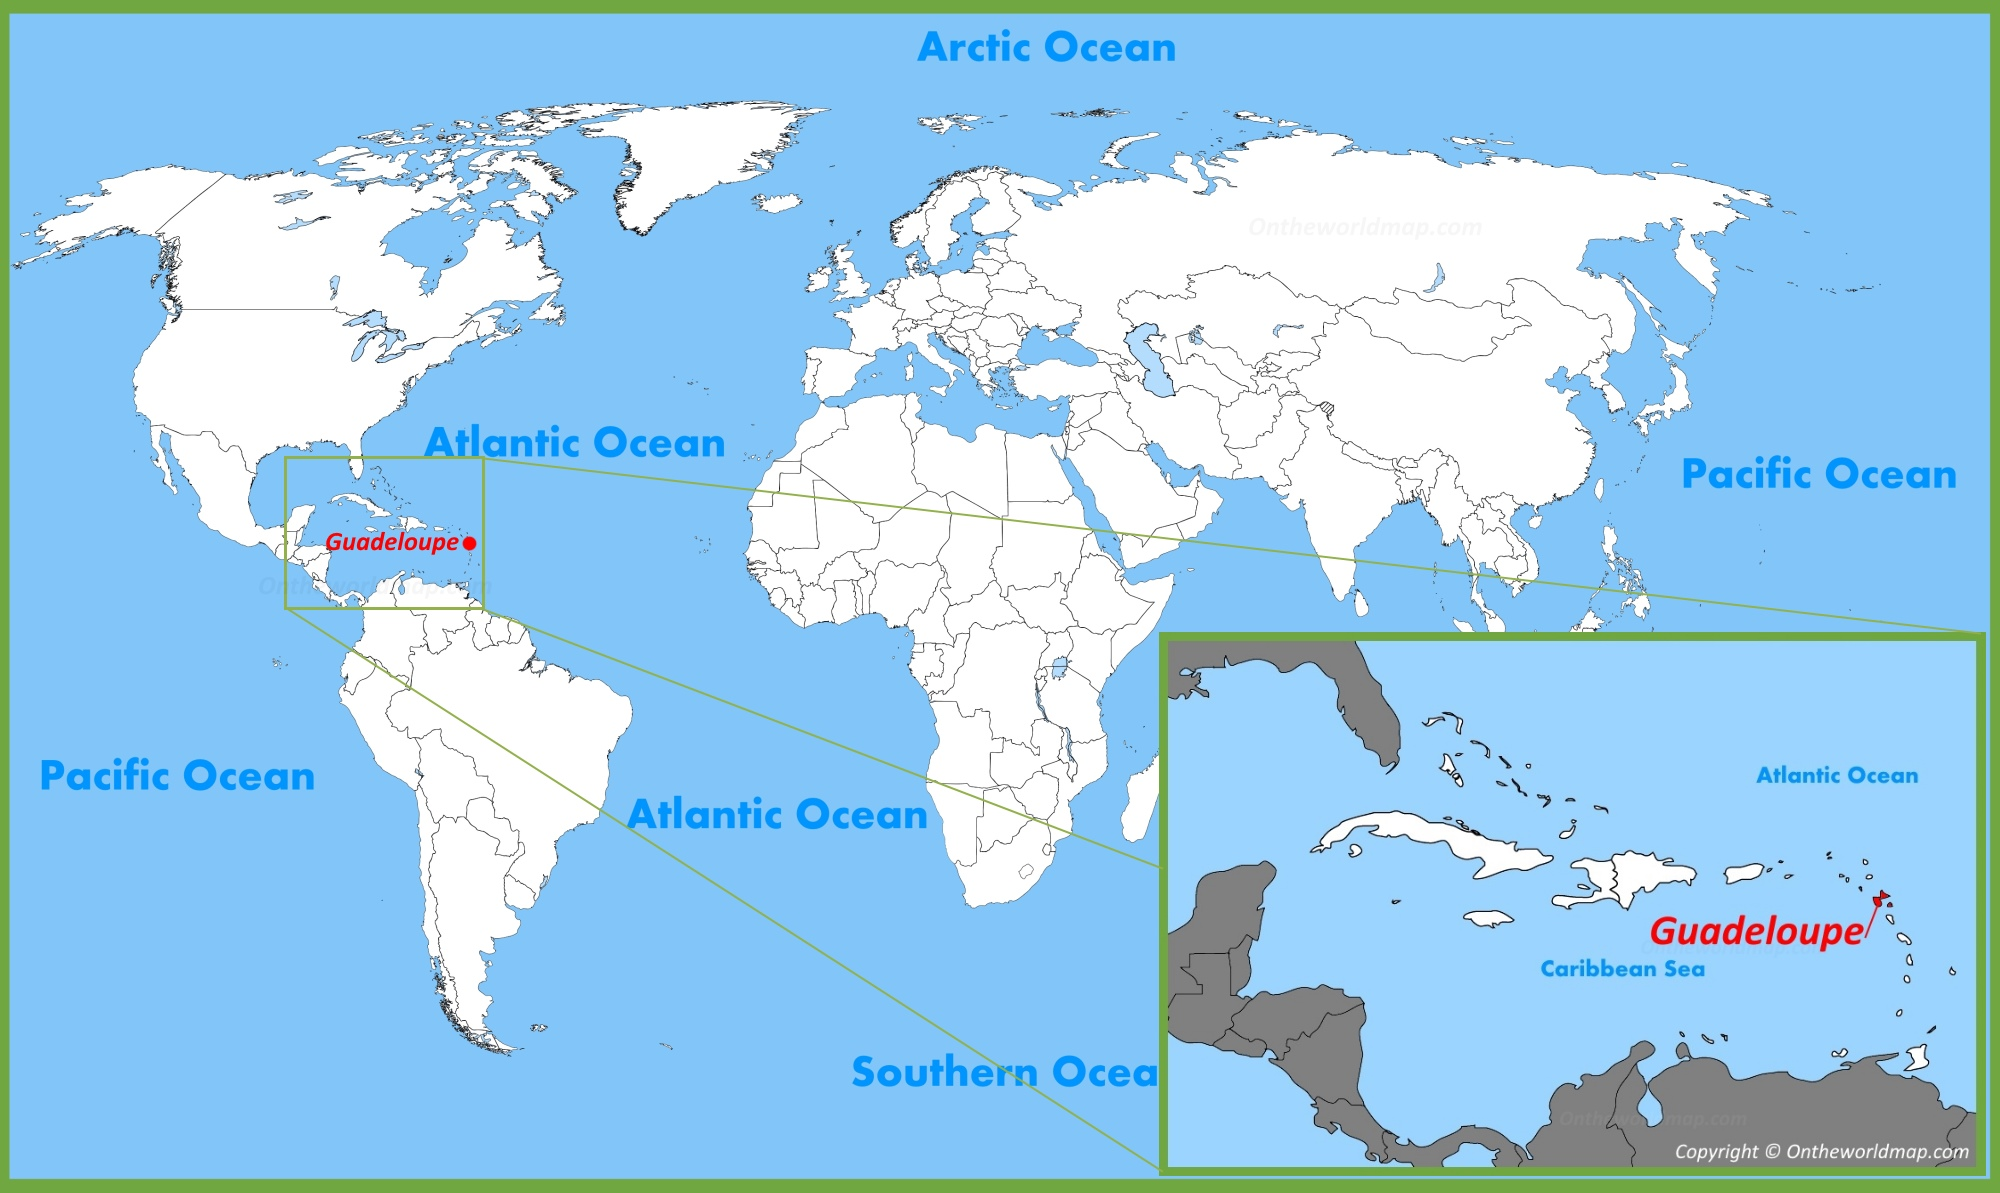 Guadeloupe Location on the World Map